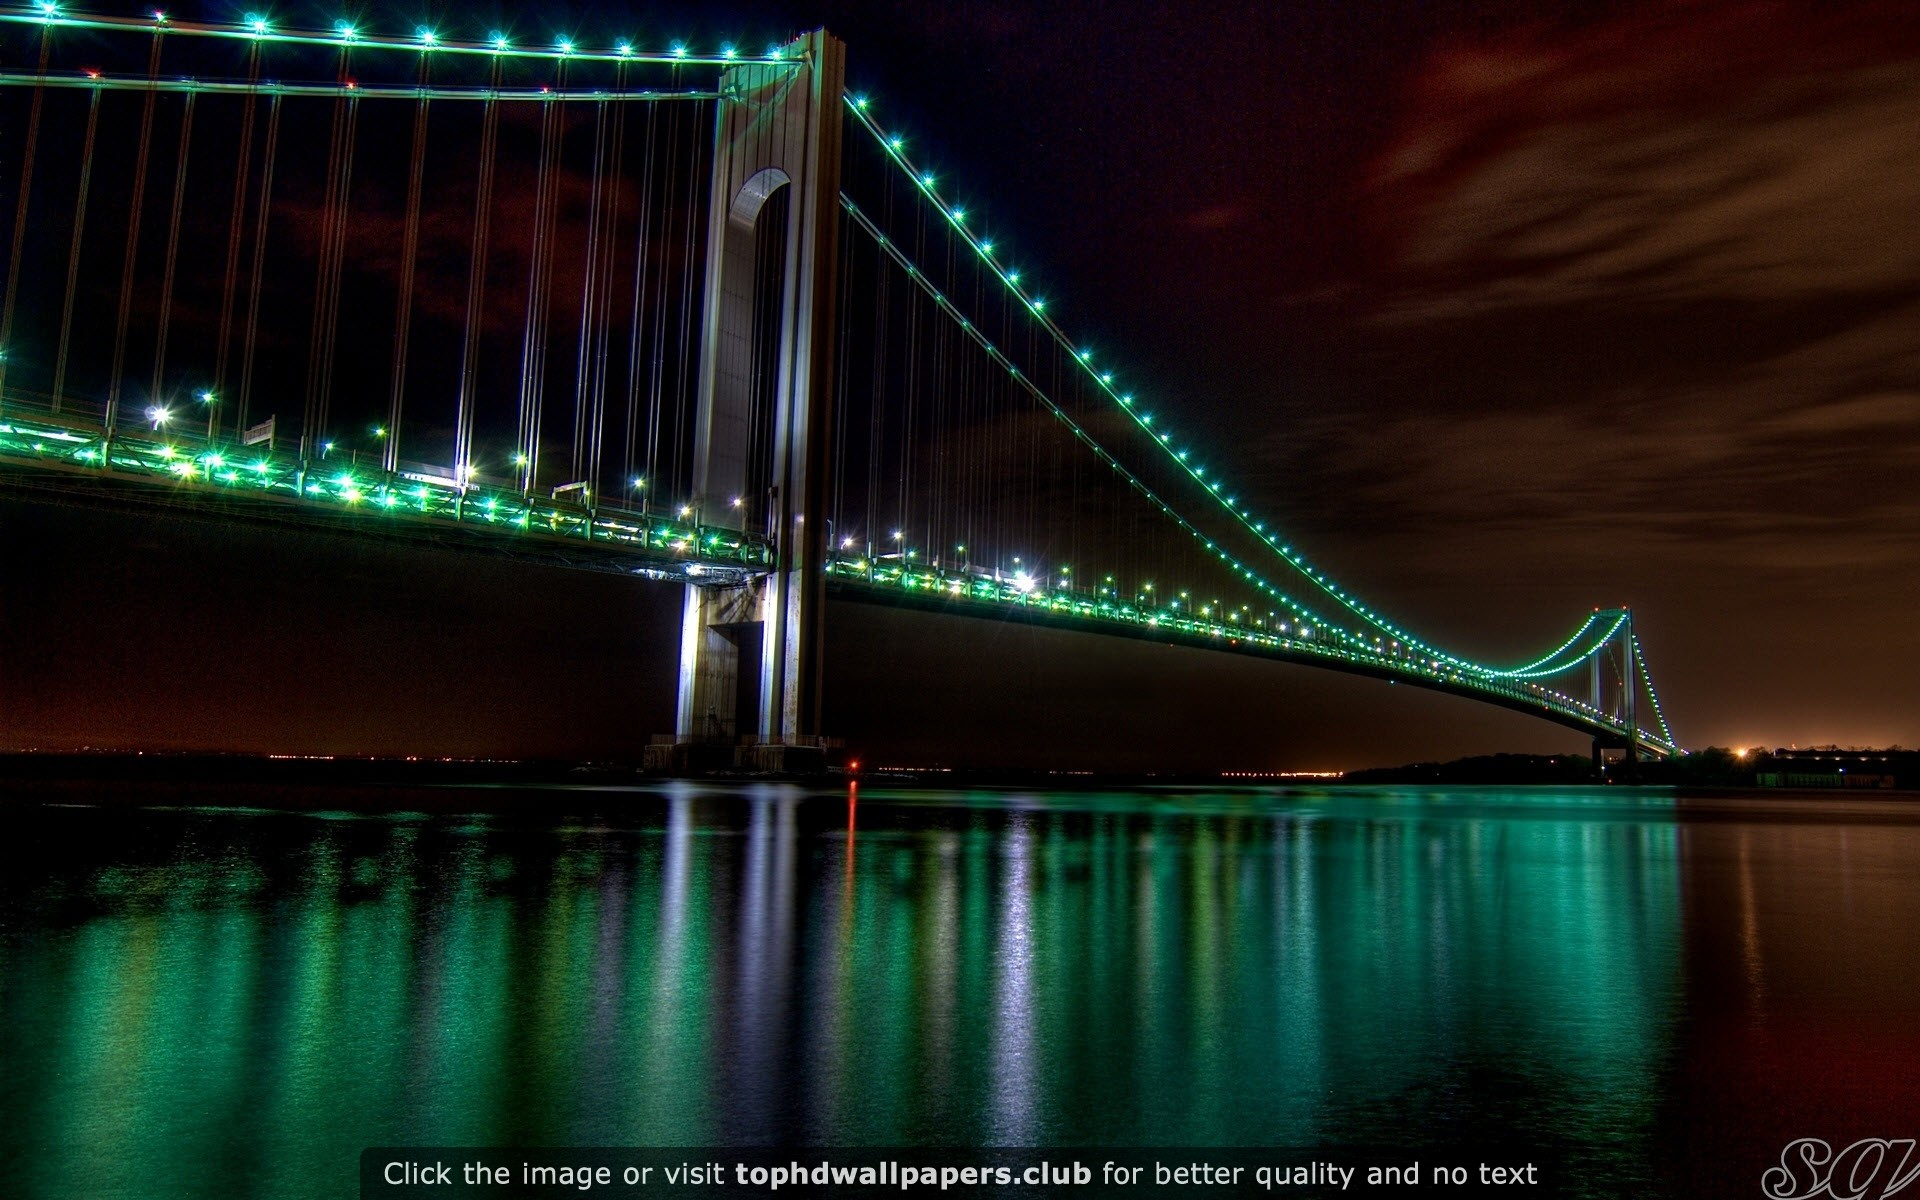 1920x1200 The Golden Gate Bridge Night View HD wallpaper for your PC, Mac or Mobile  device